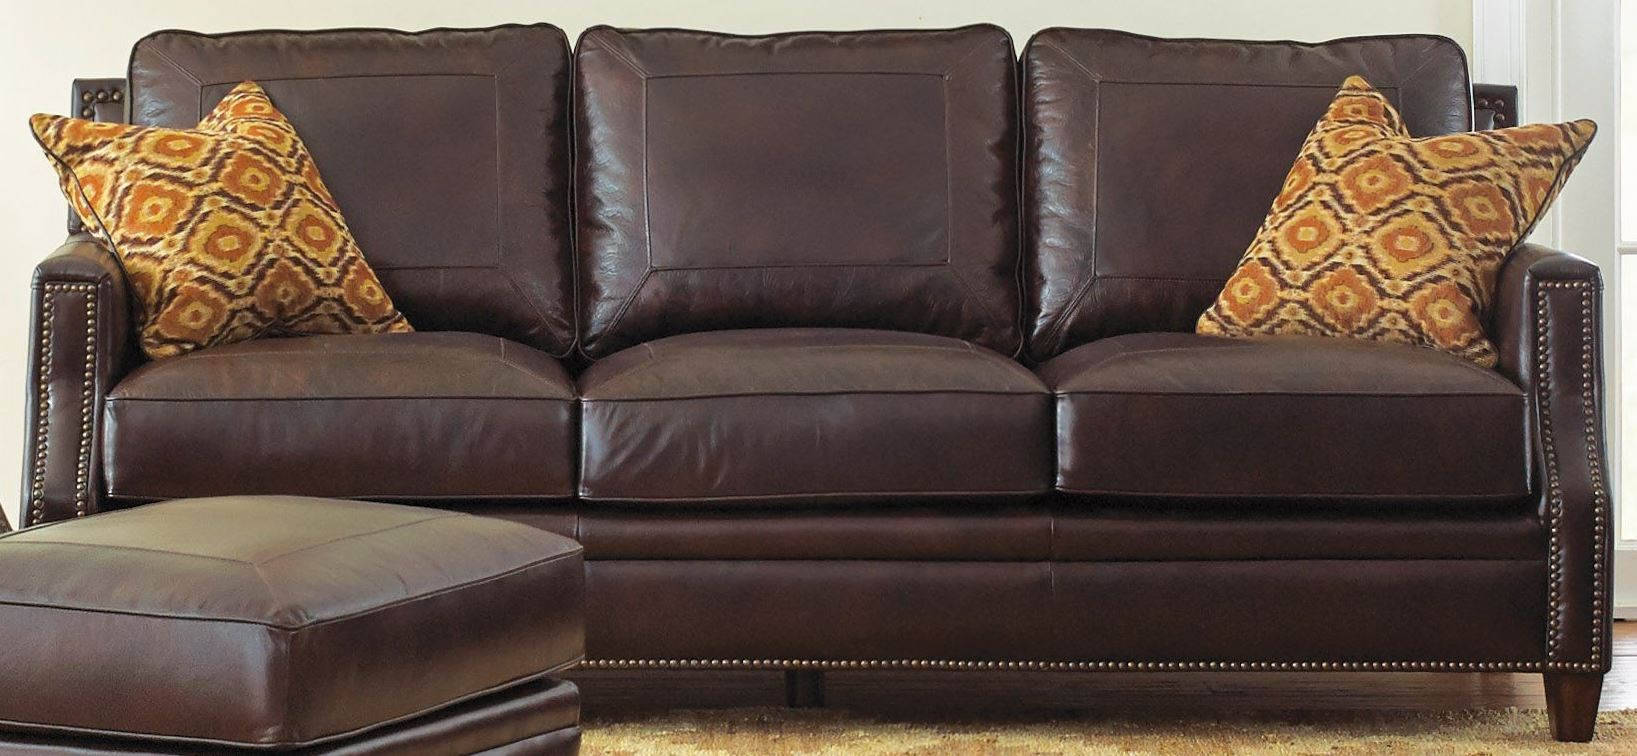 Caldwell Leather Sofa with 2 Accent Pillows from Steve Silver (CW900S) Coleman Furniture